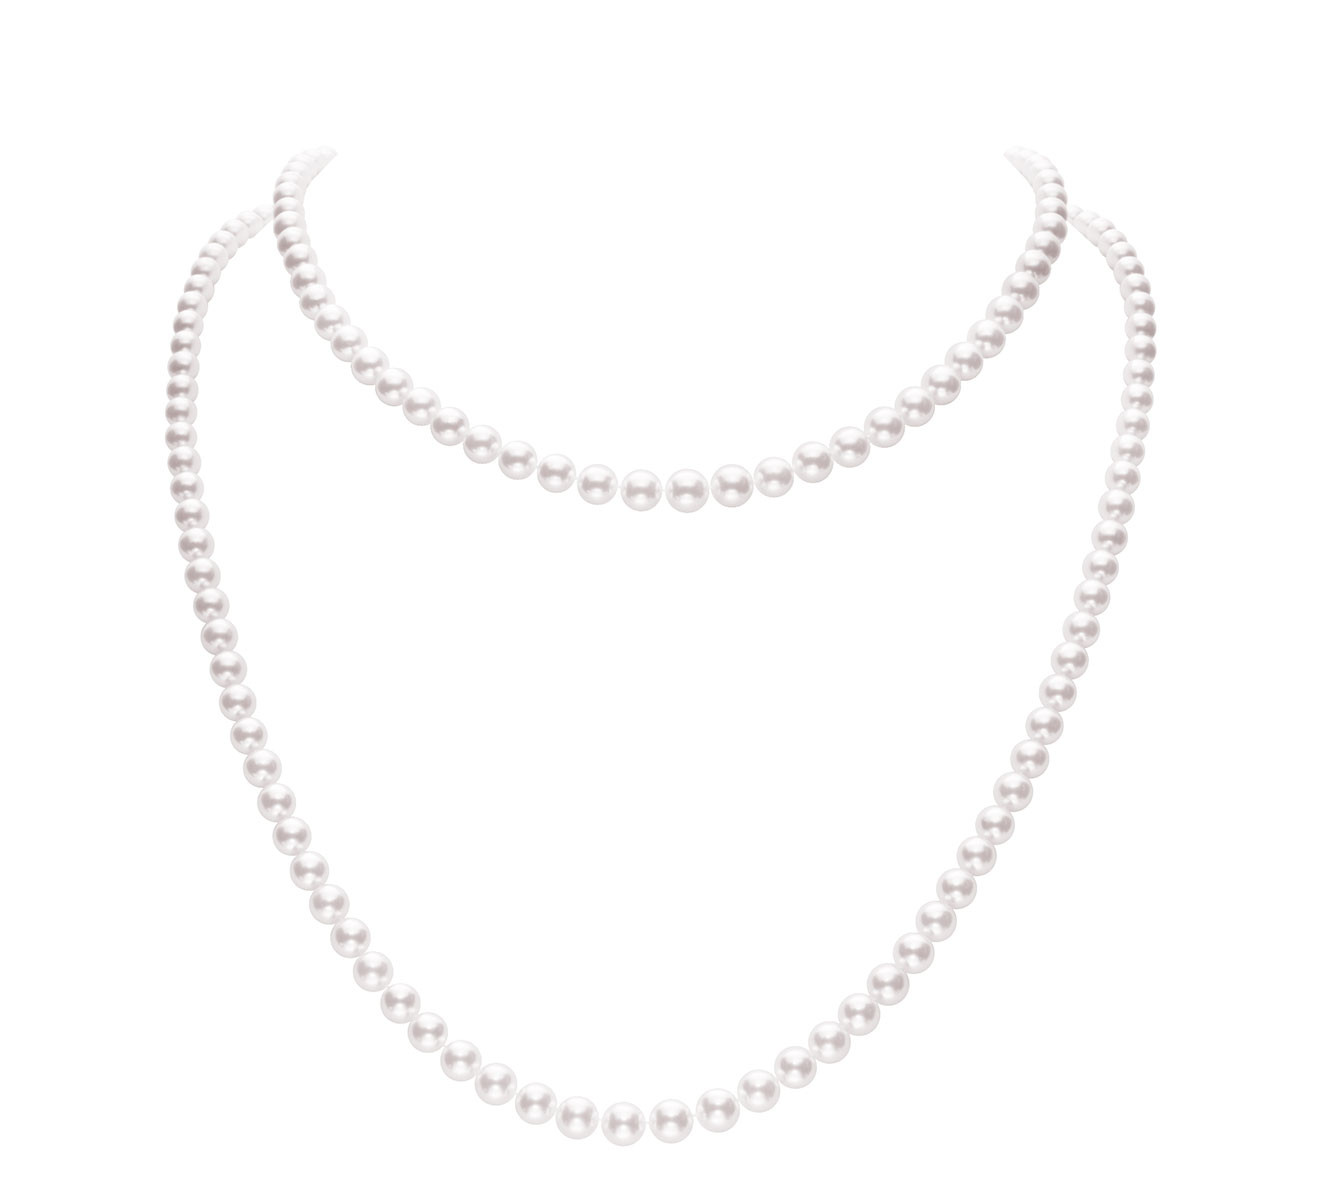 Mikimoto Adjustable Double Strand Akoya Pearl Necklace Model View